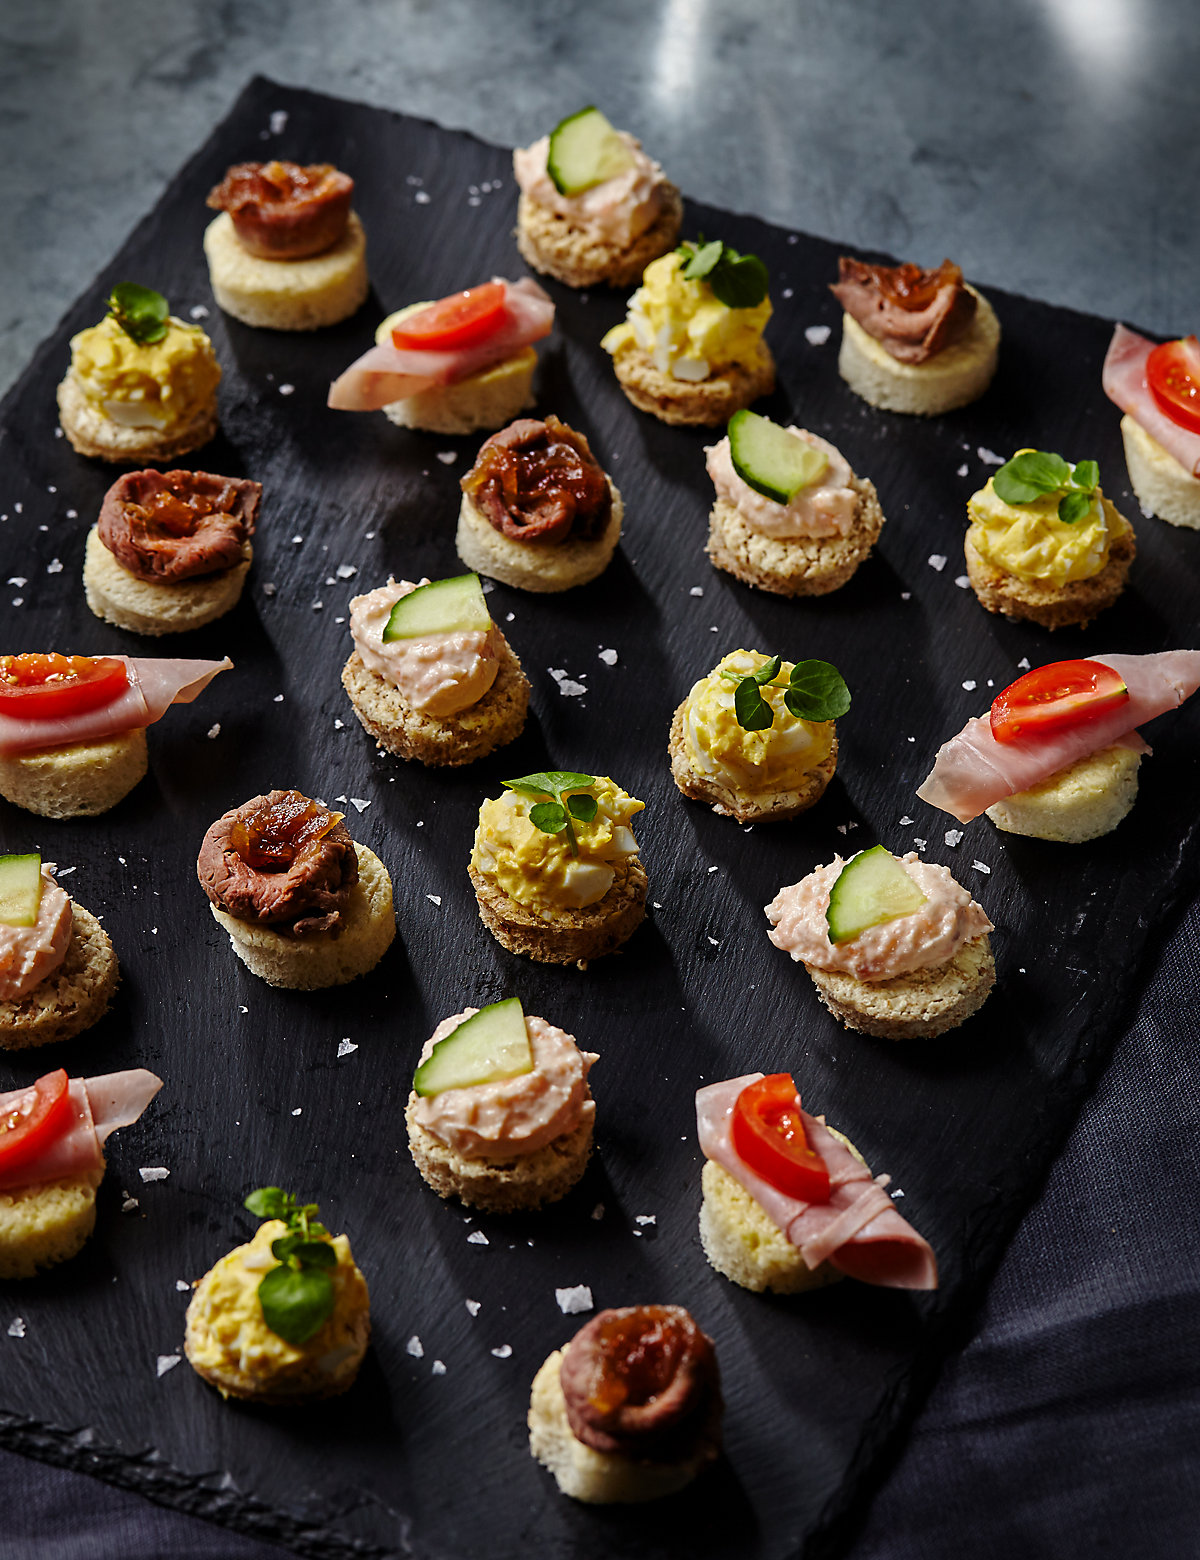 marks and spencer 24 mini topped canap platter